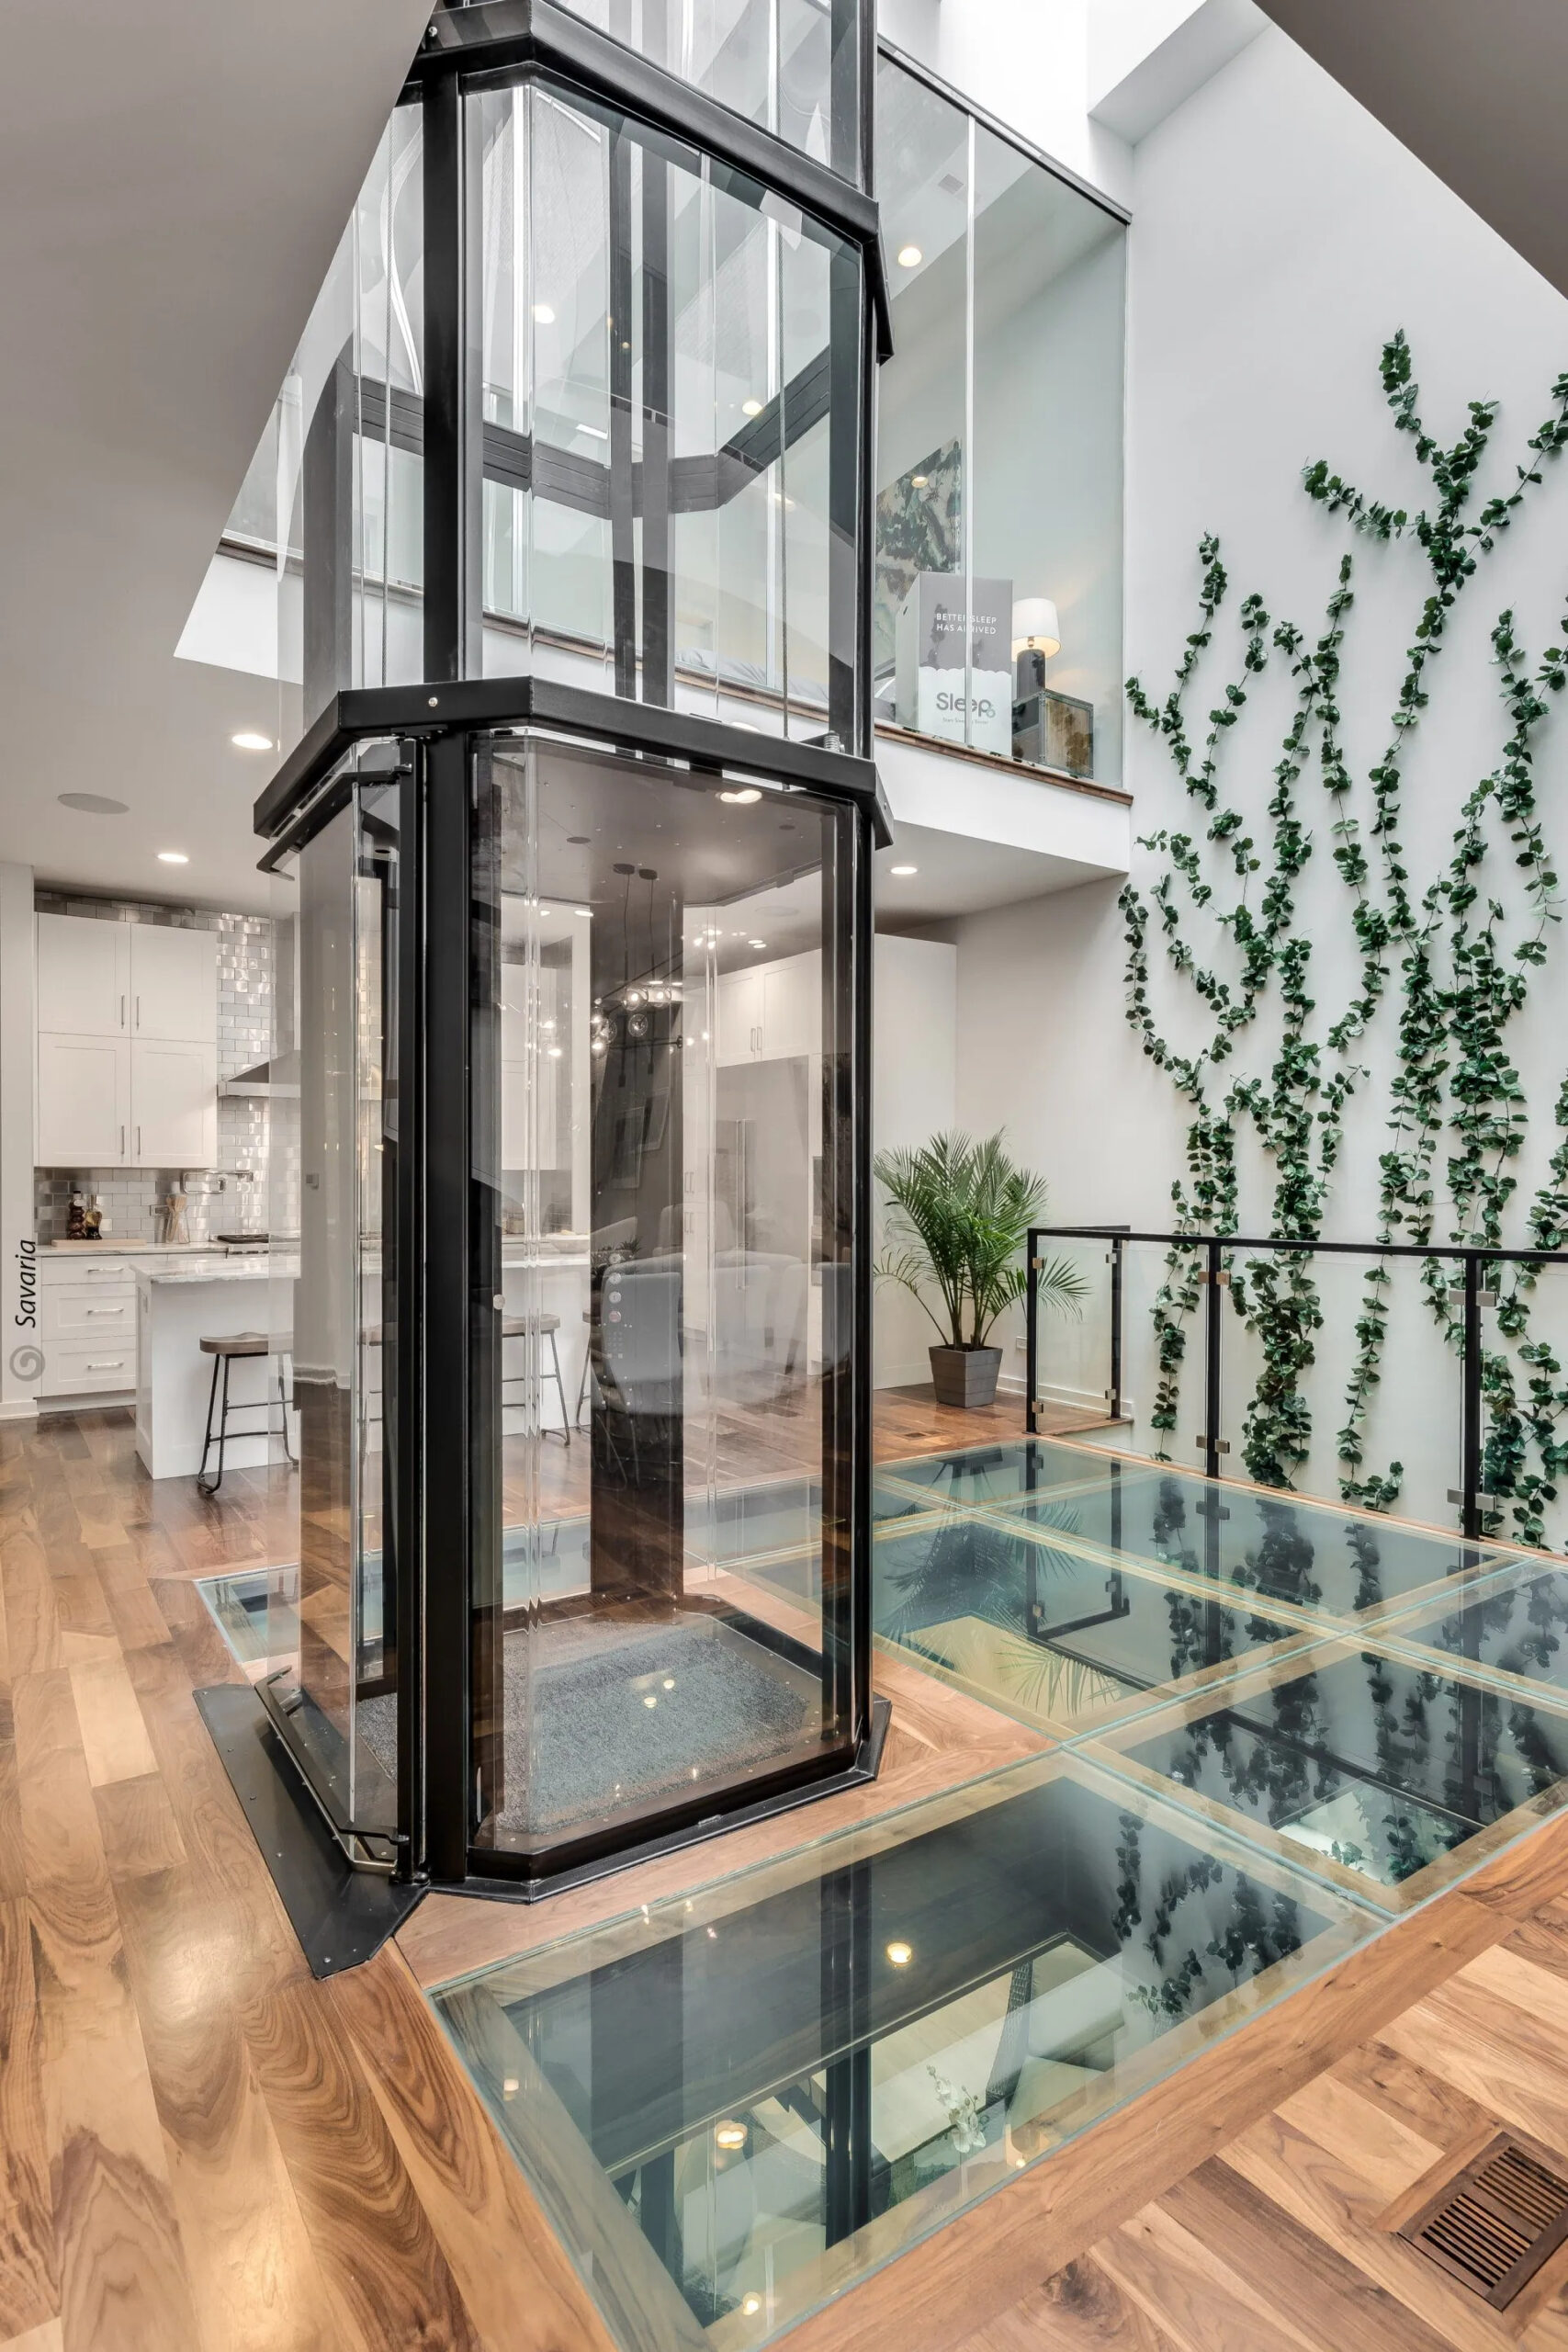 Vuelift O V RS cabonglassfloor image scaled - Vuelift Octagon